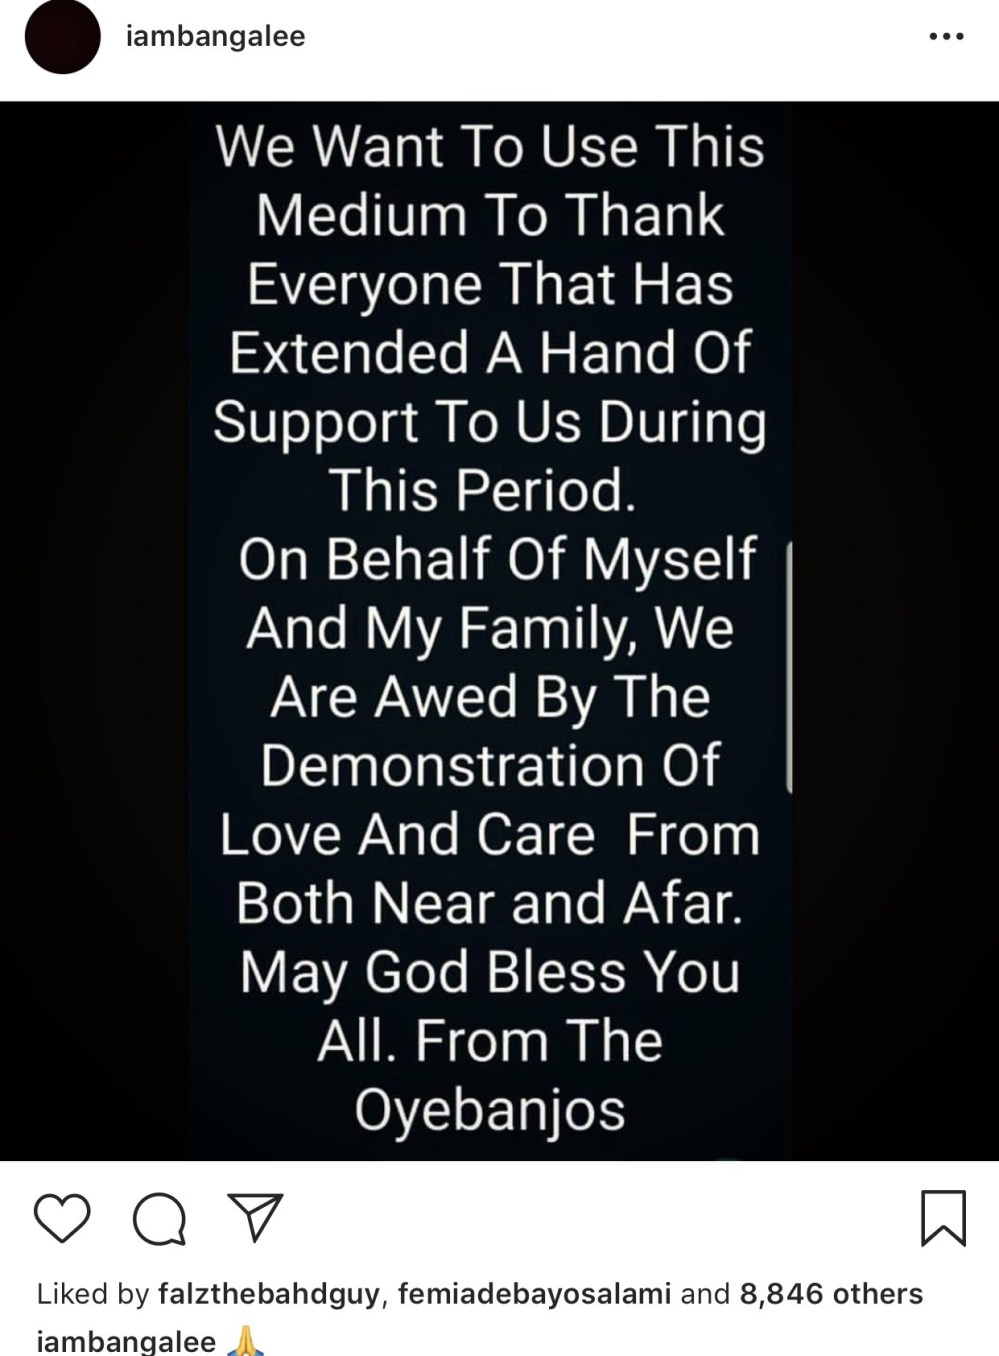 DBanj thanks everyone for extending support towards his family as they grieve the loss of his son